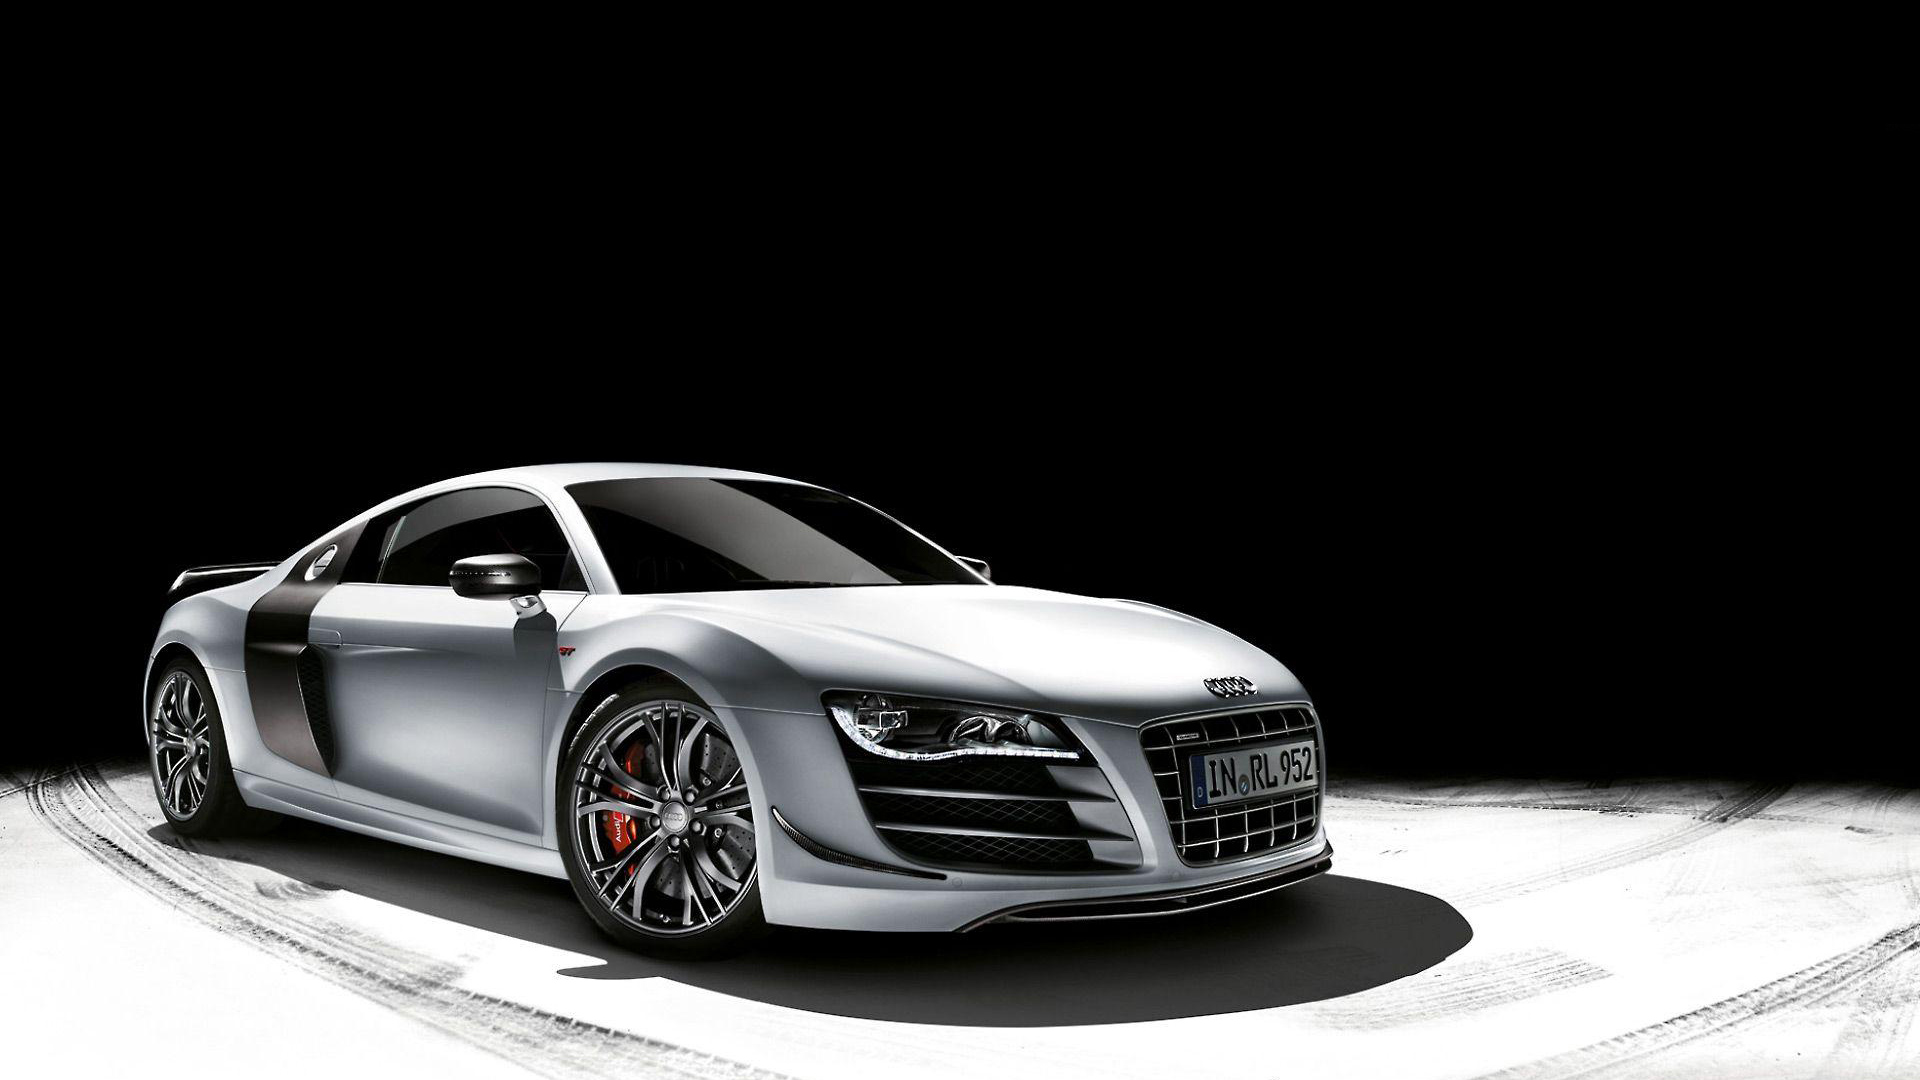 Audi WallpapersBackgrounds In HD For Free Download - Audi car background